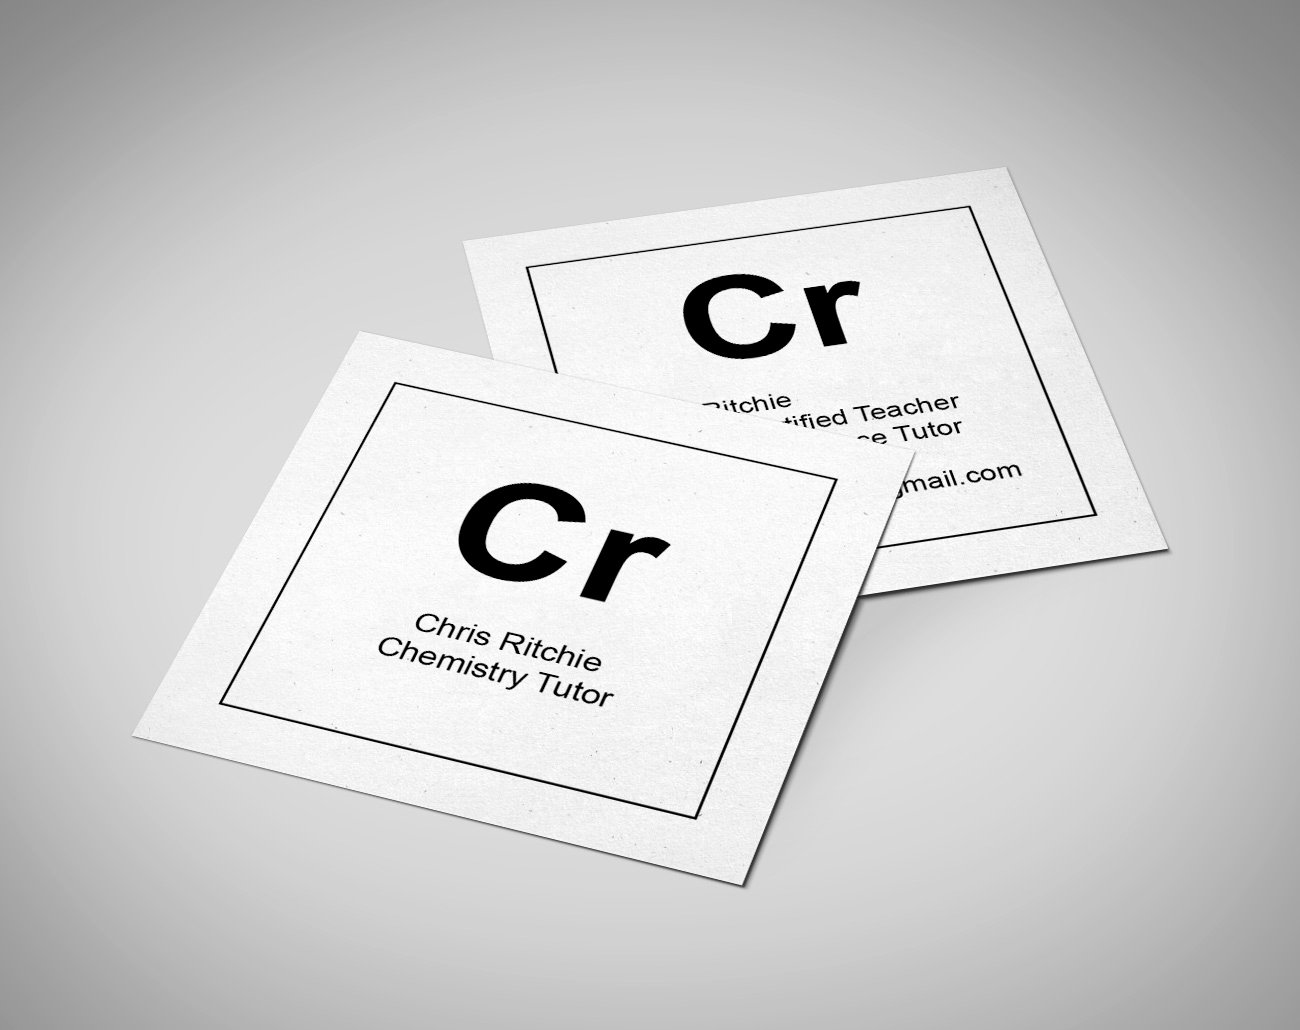 Square Business Card Mockup Luxury Chris Ritchie Chemistry Tutor Identity